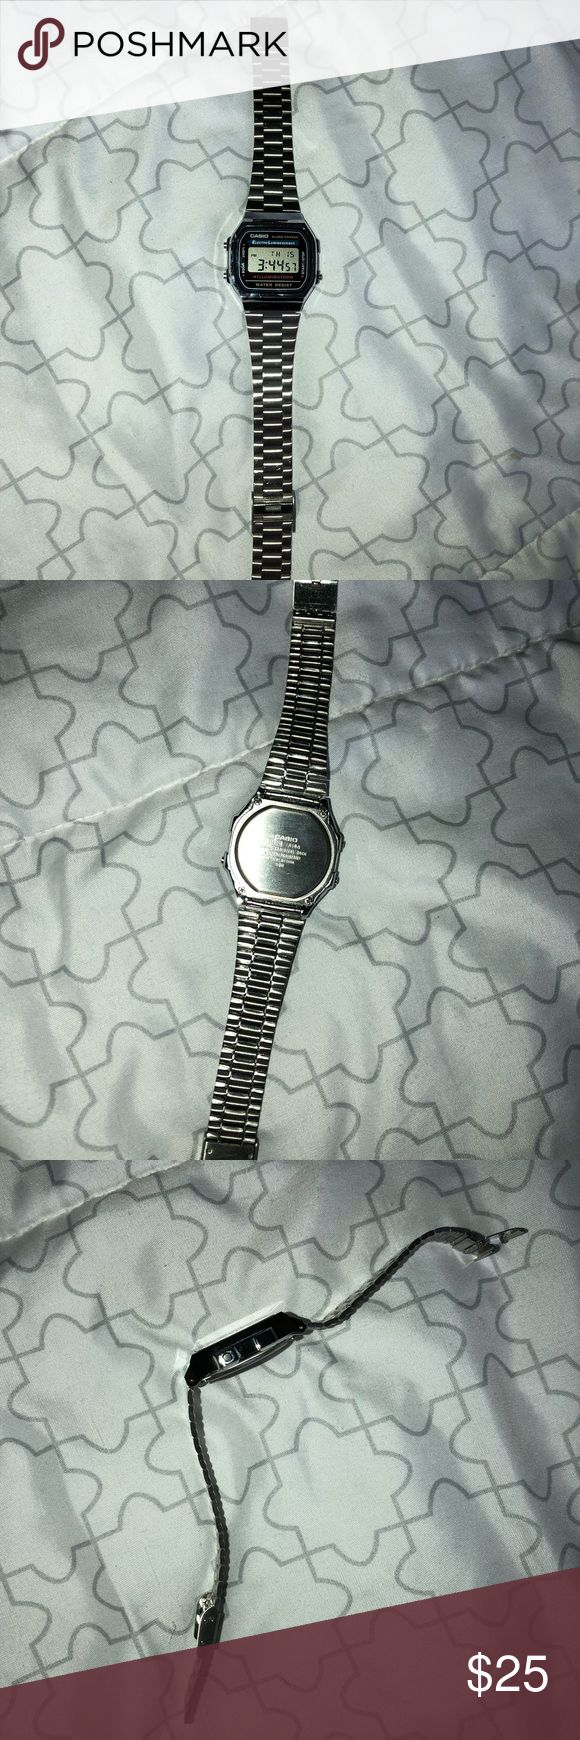 Casio watch Cute silver casio watch! Works fine and doesn't have scratches!? Casio Accessories Watches